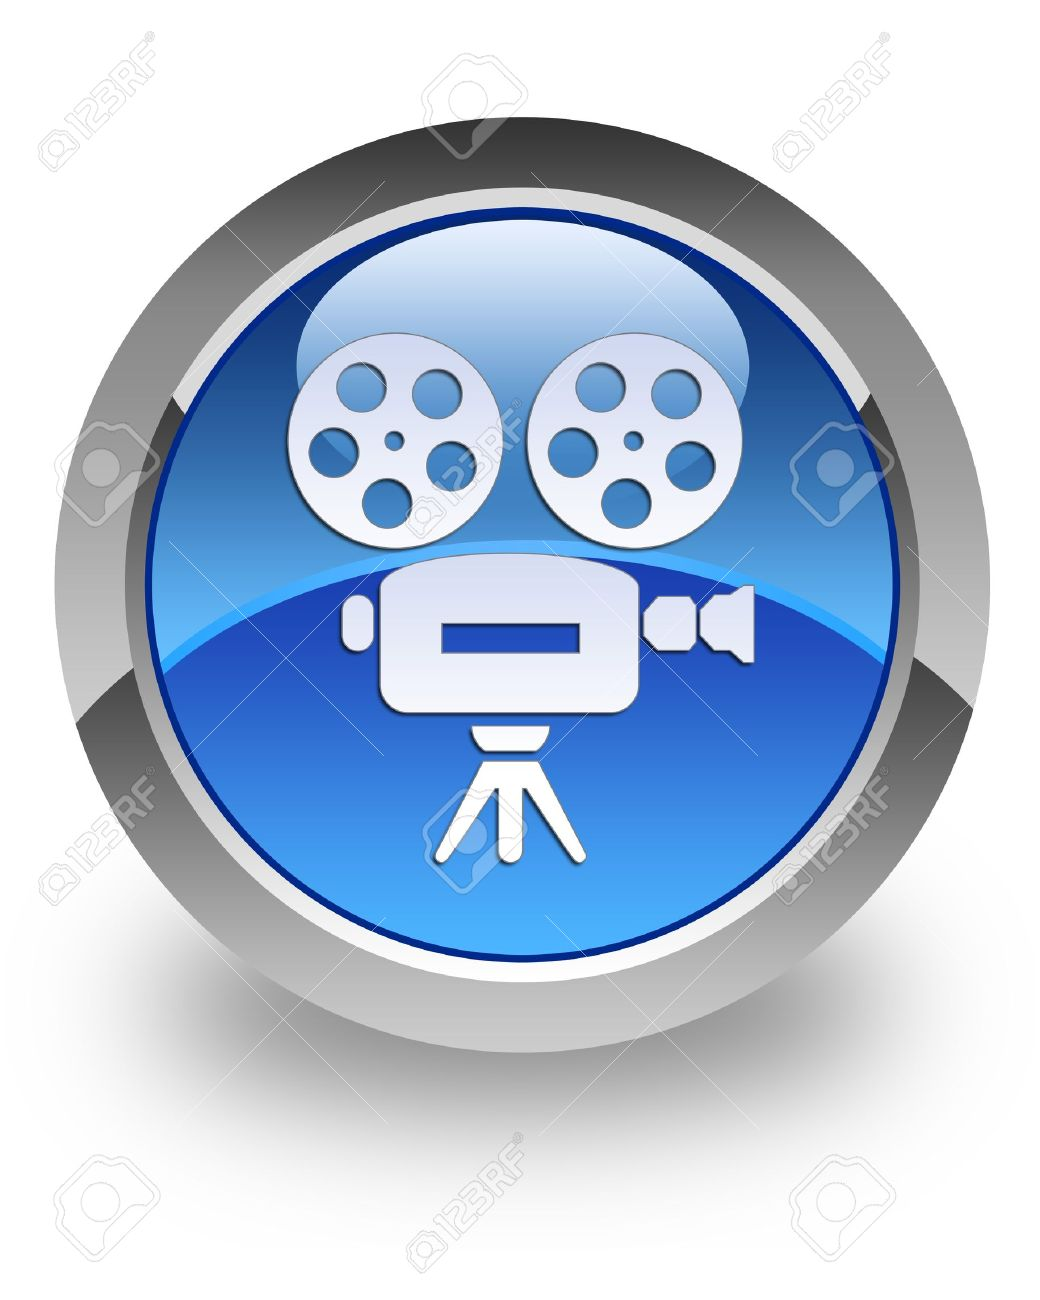 Video camera icon on glossy blue round button Stock Photo - 13956107